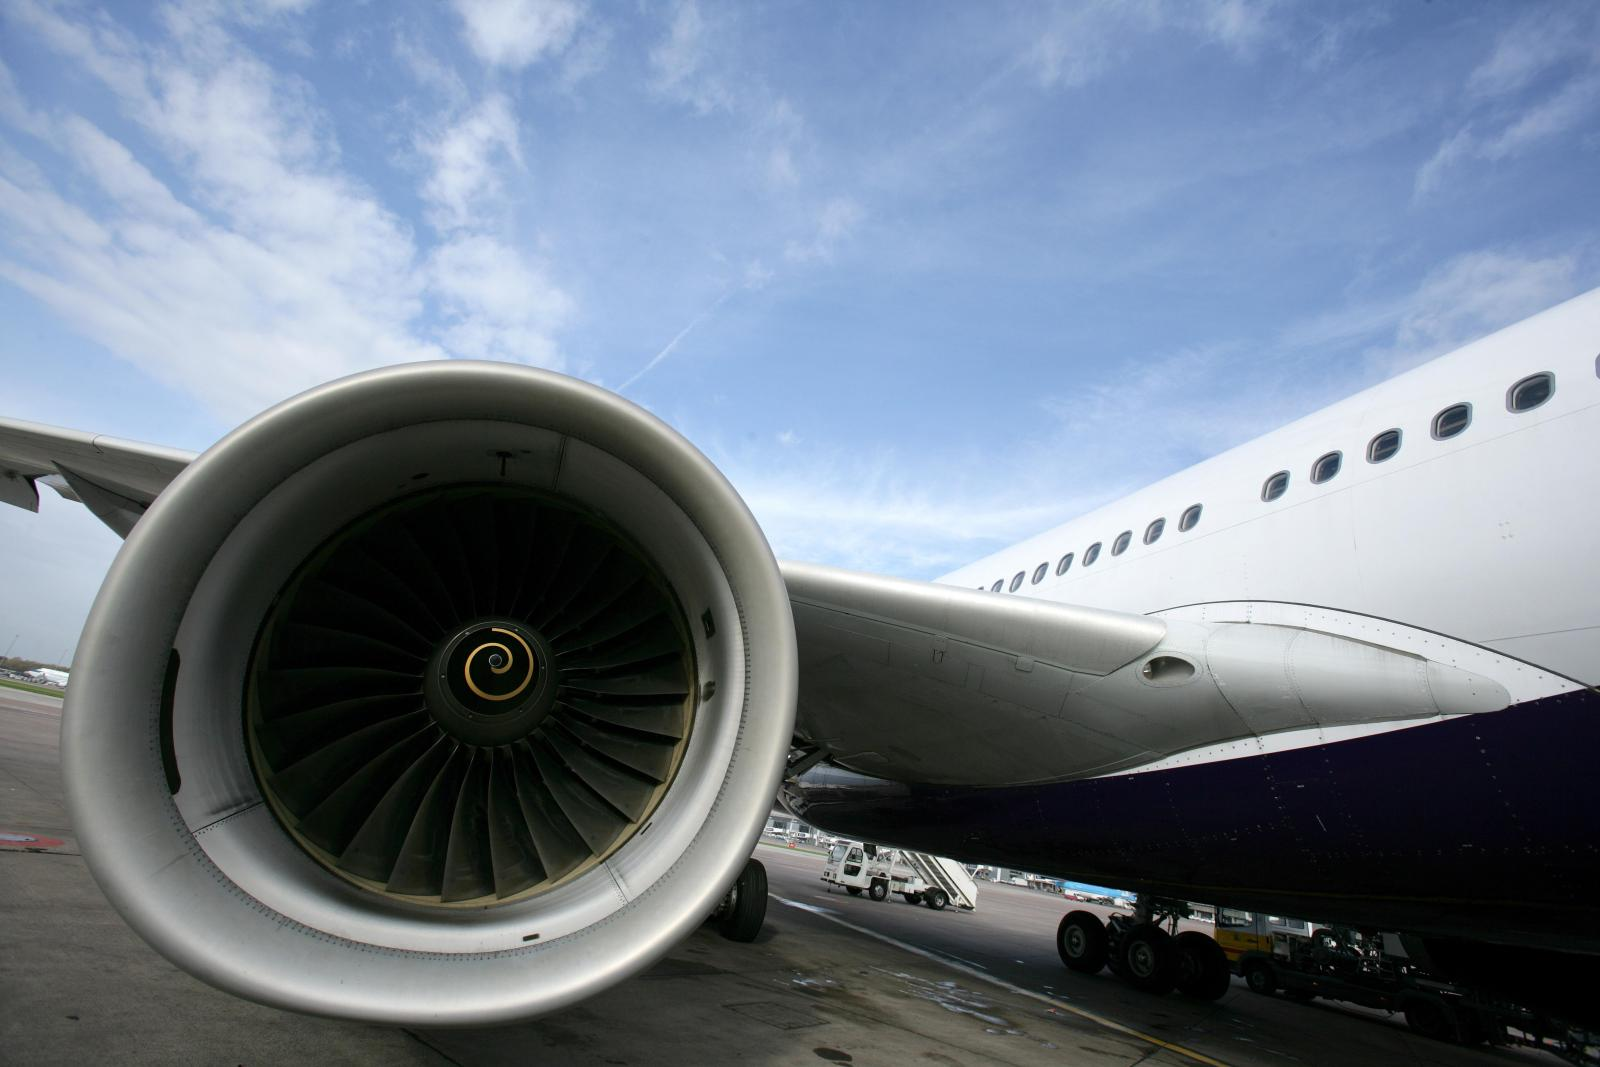 The Rolls-Royce Trent 700